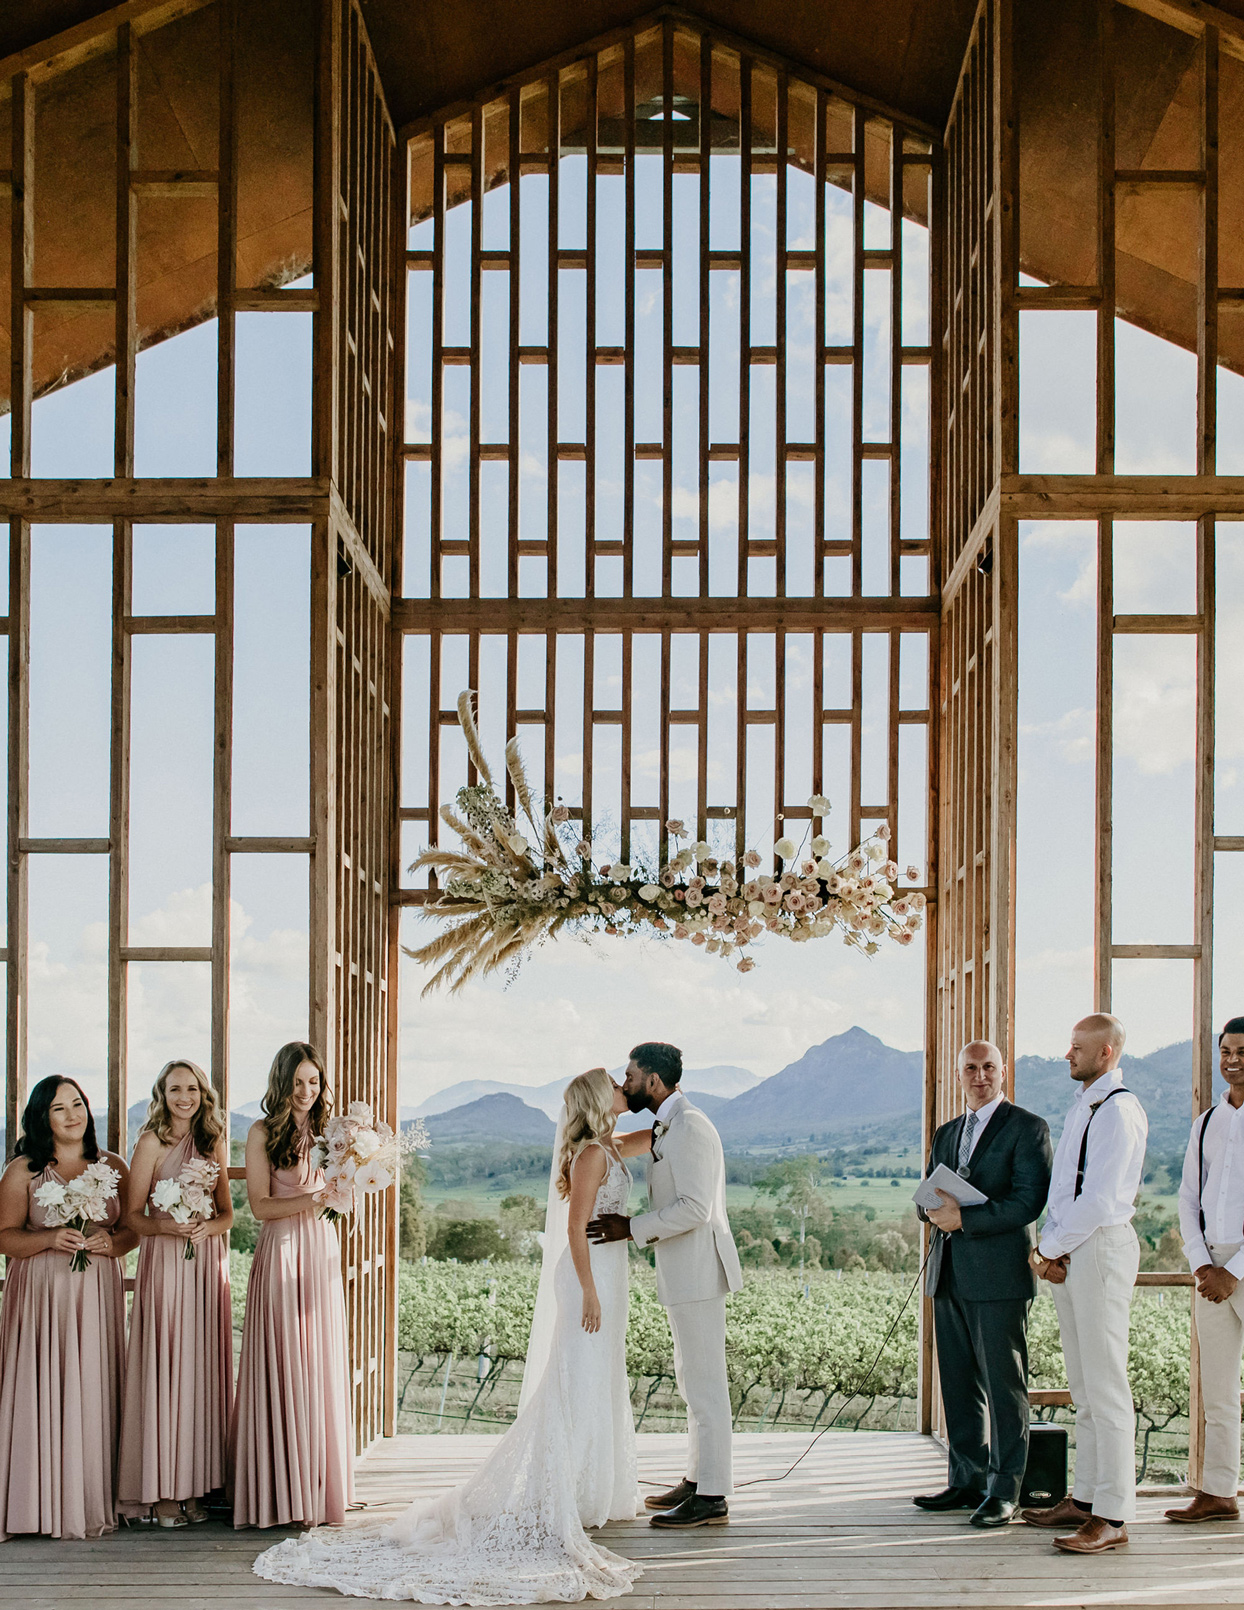 bride and groom kiss during wedding surrounded by bridal party